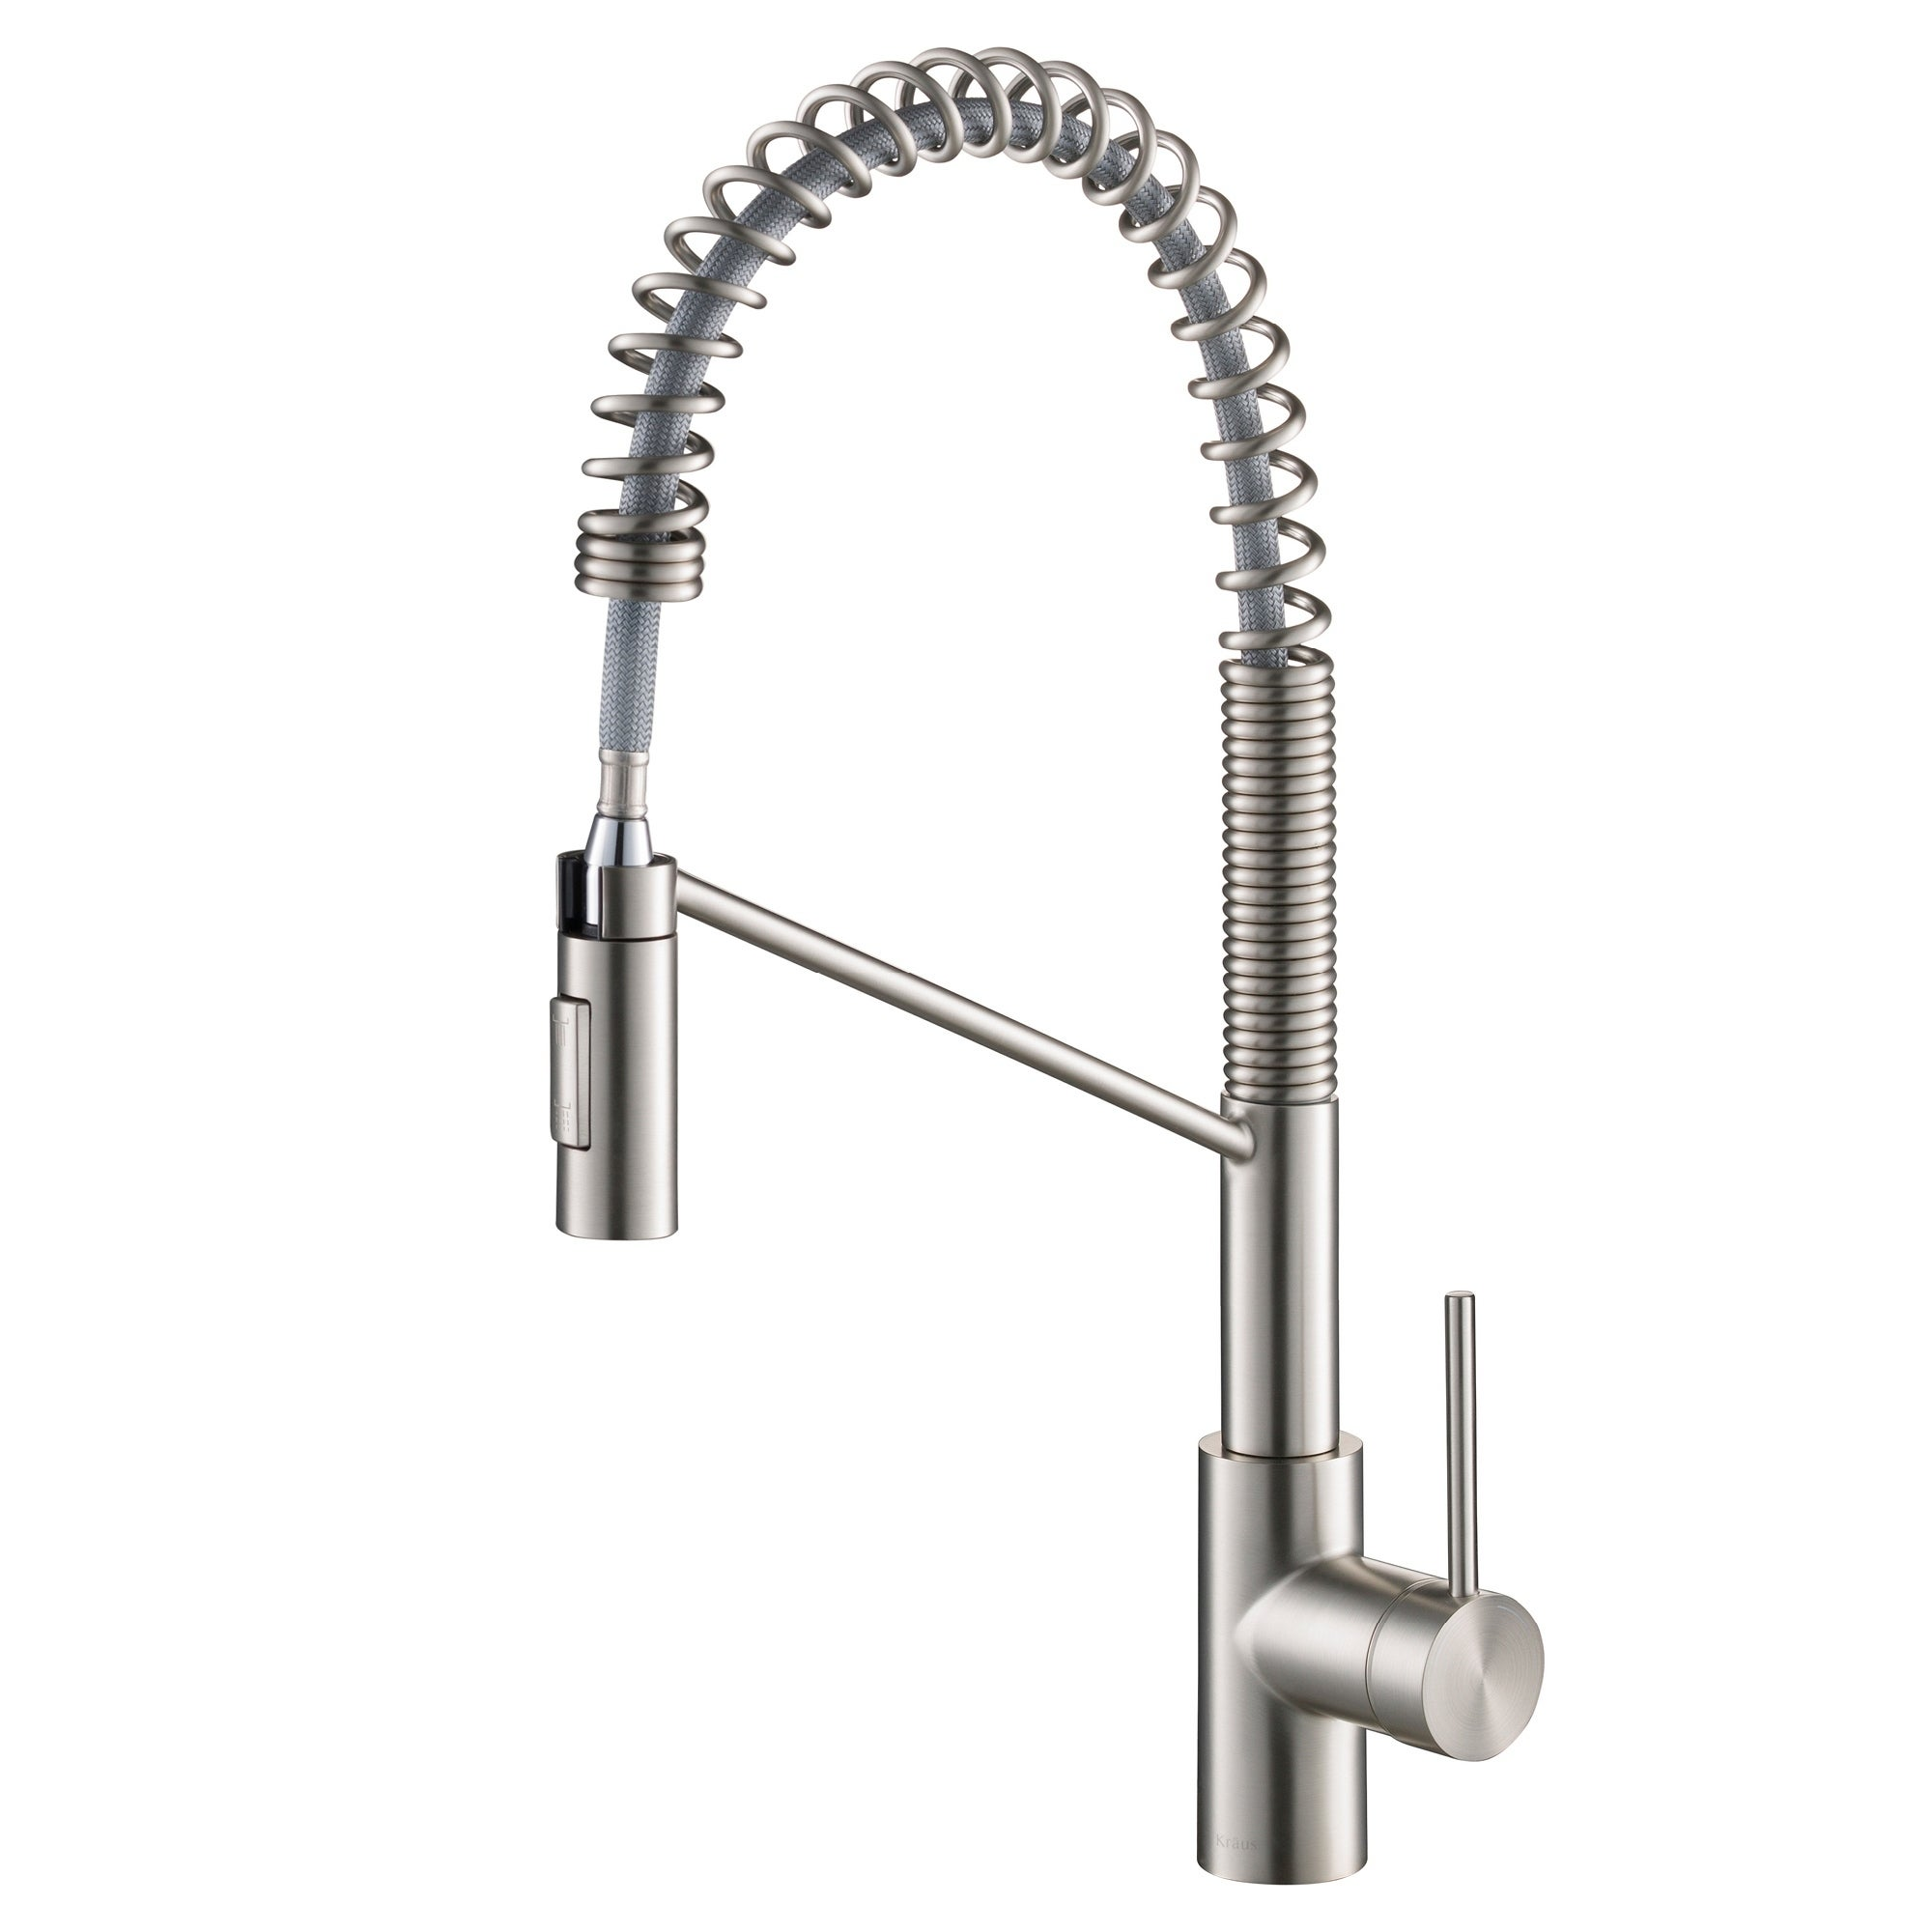 Buy Kitchen Faucets Online at Overstock | Our Best Faucets Deals